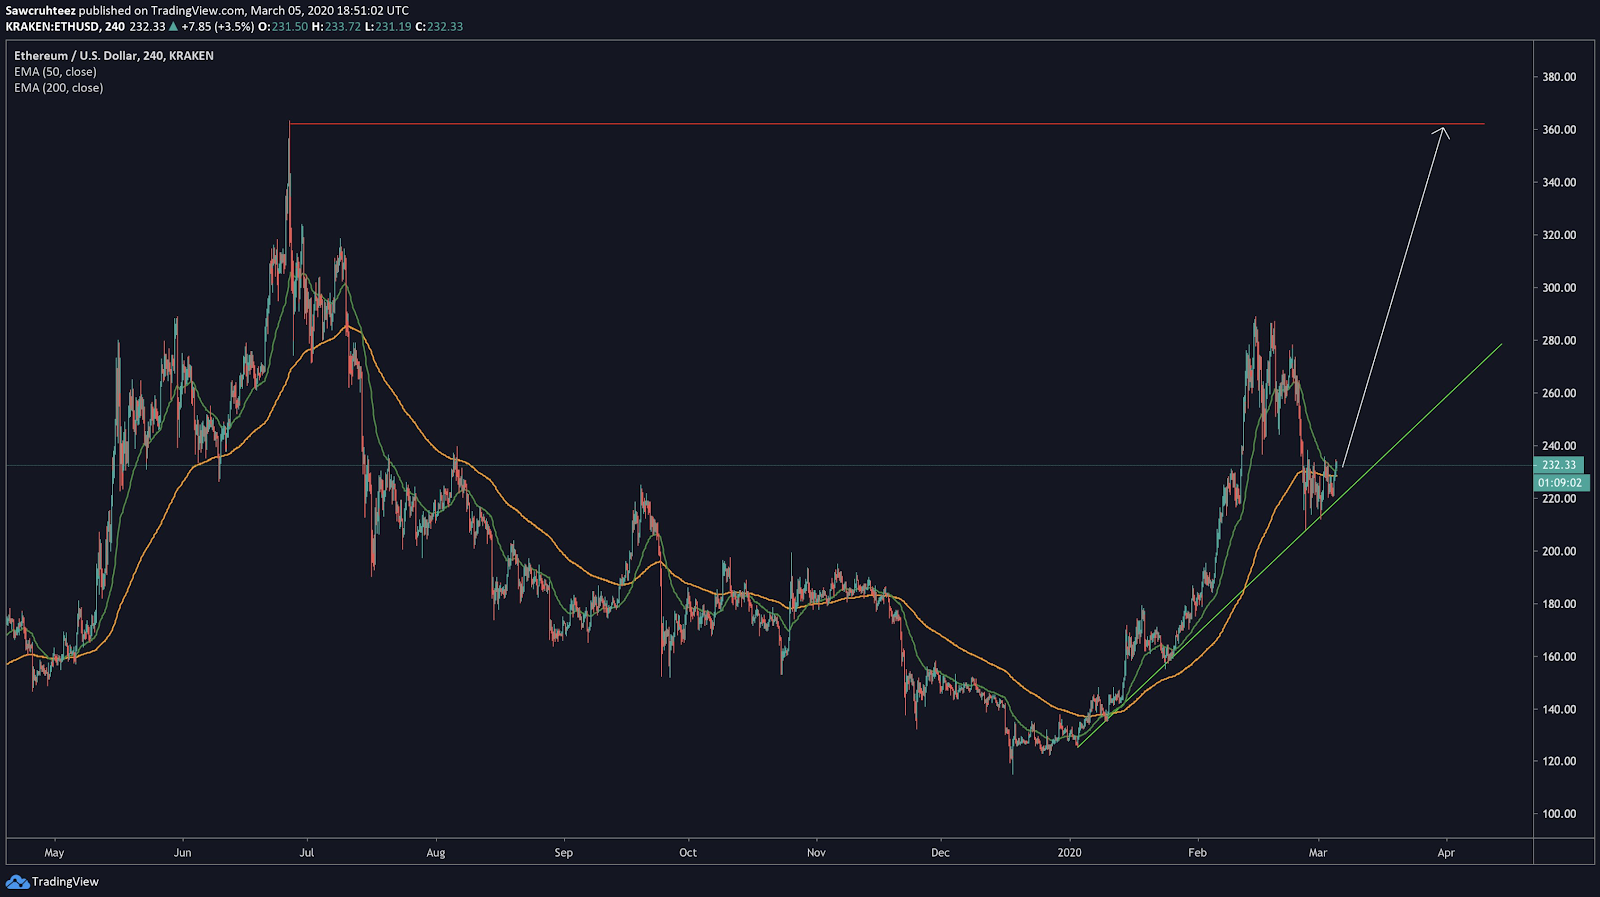 Ethereum / USD price chart by TradingView